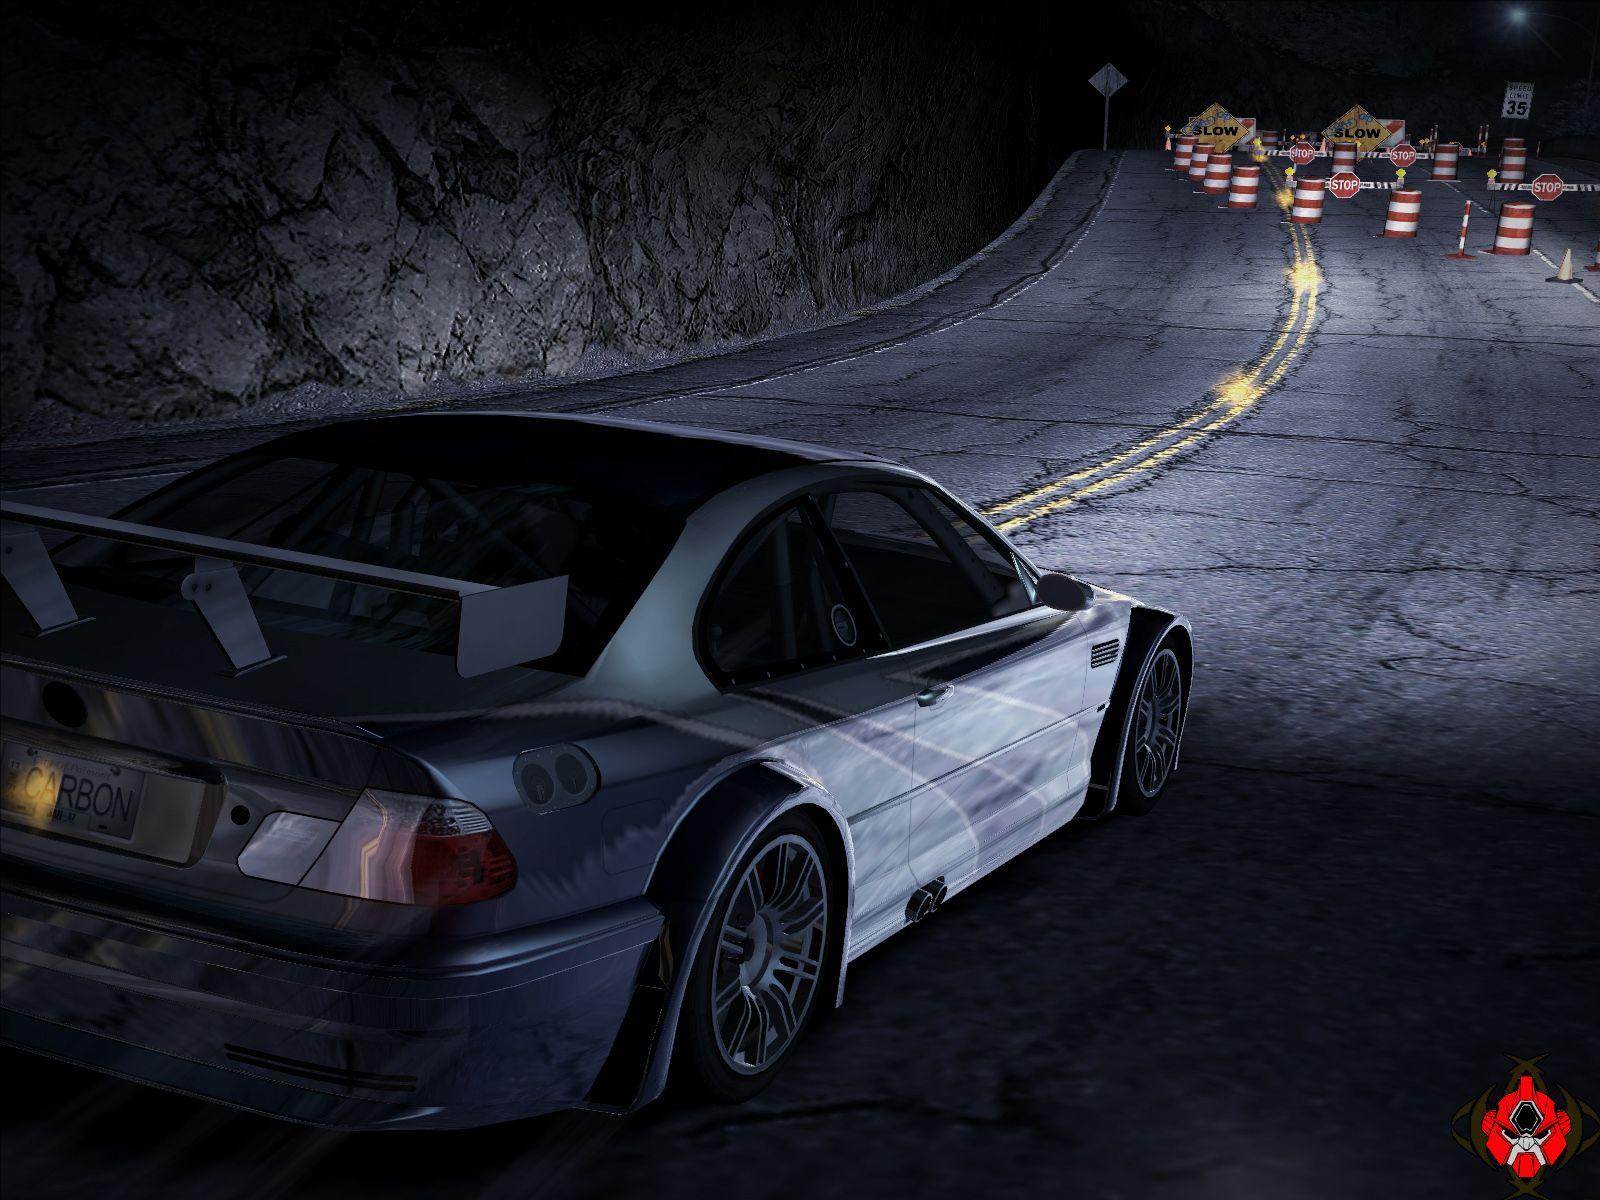 Need For Speed: Most Wanted Razor Wallpapers - Wallpaper Cave